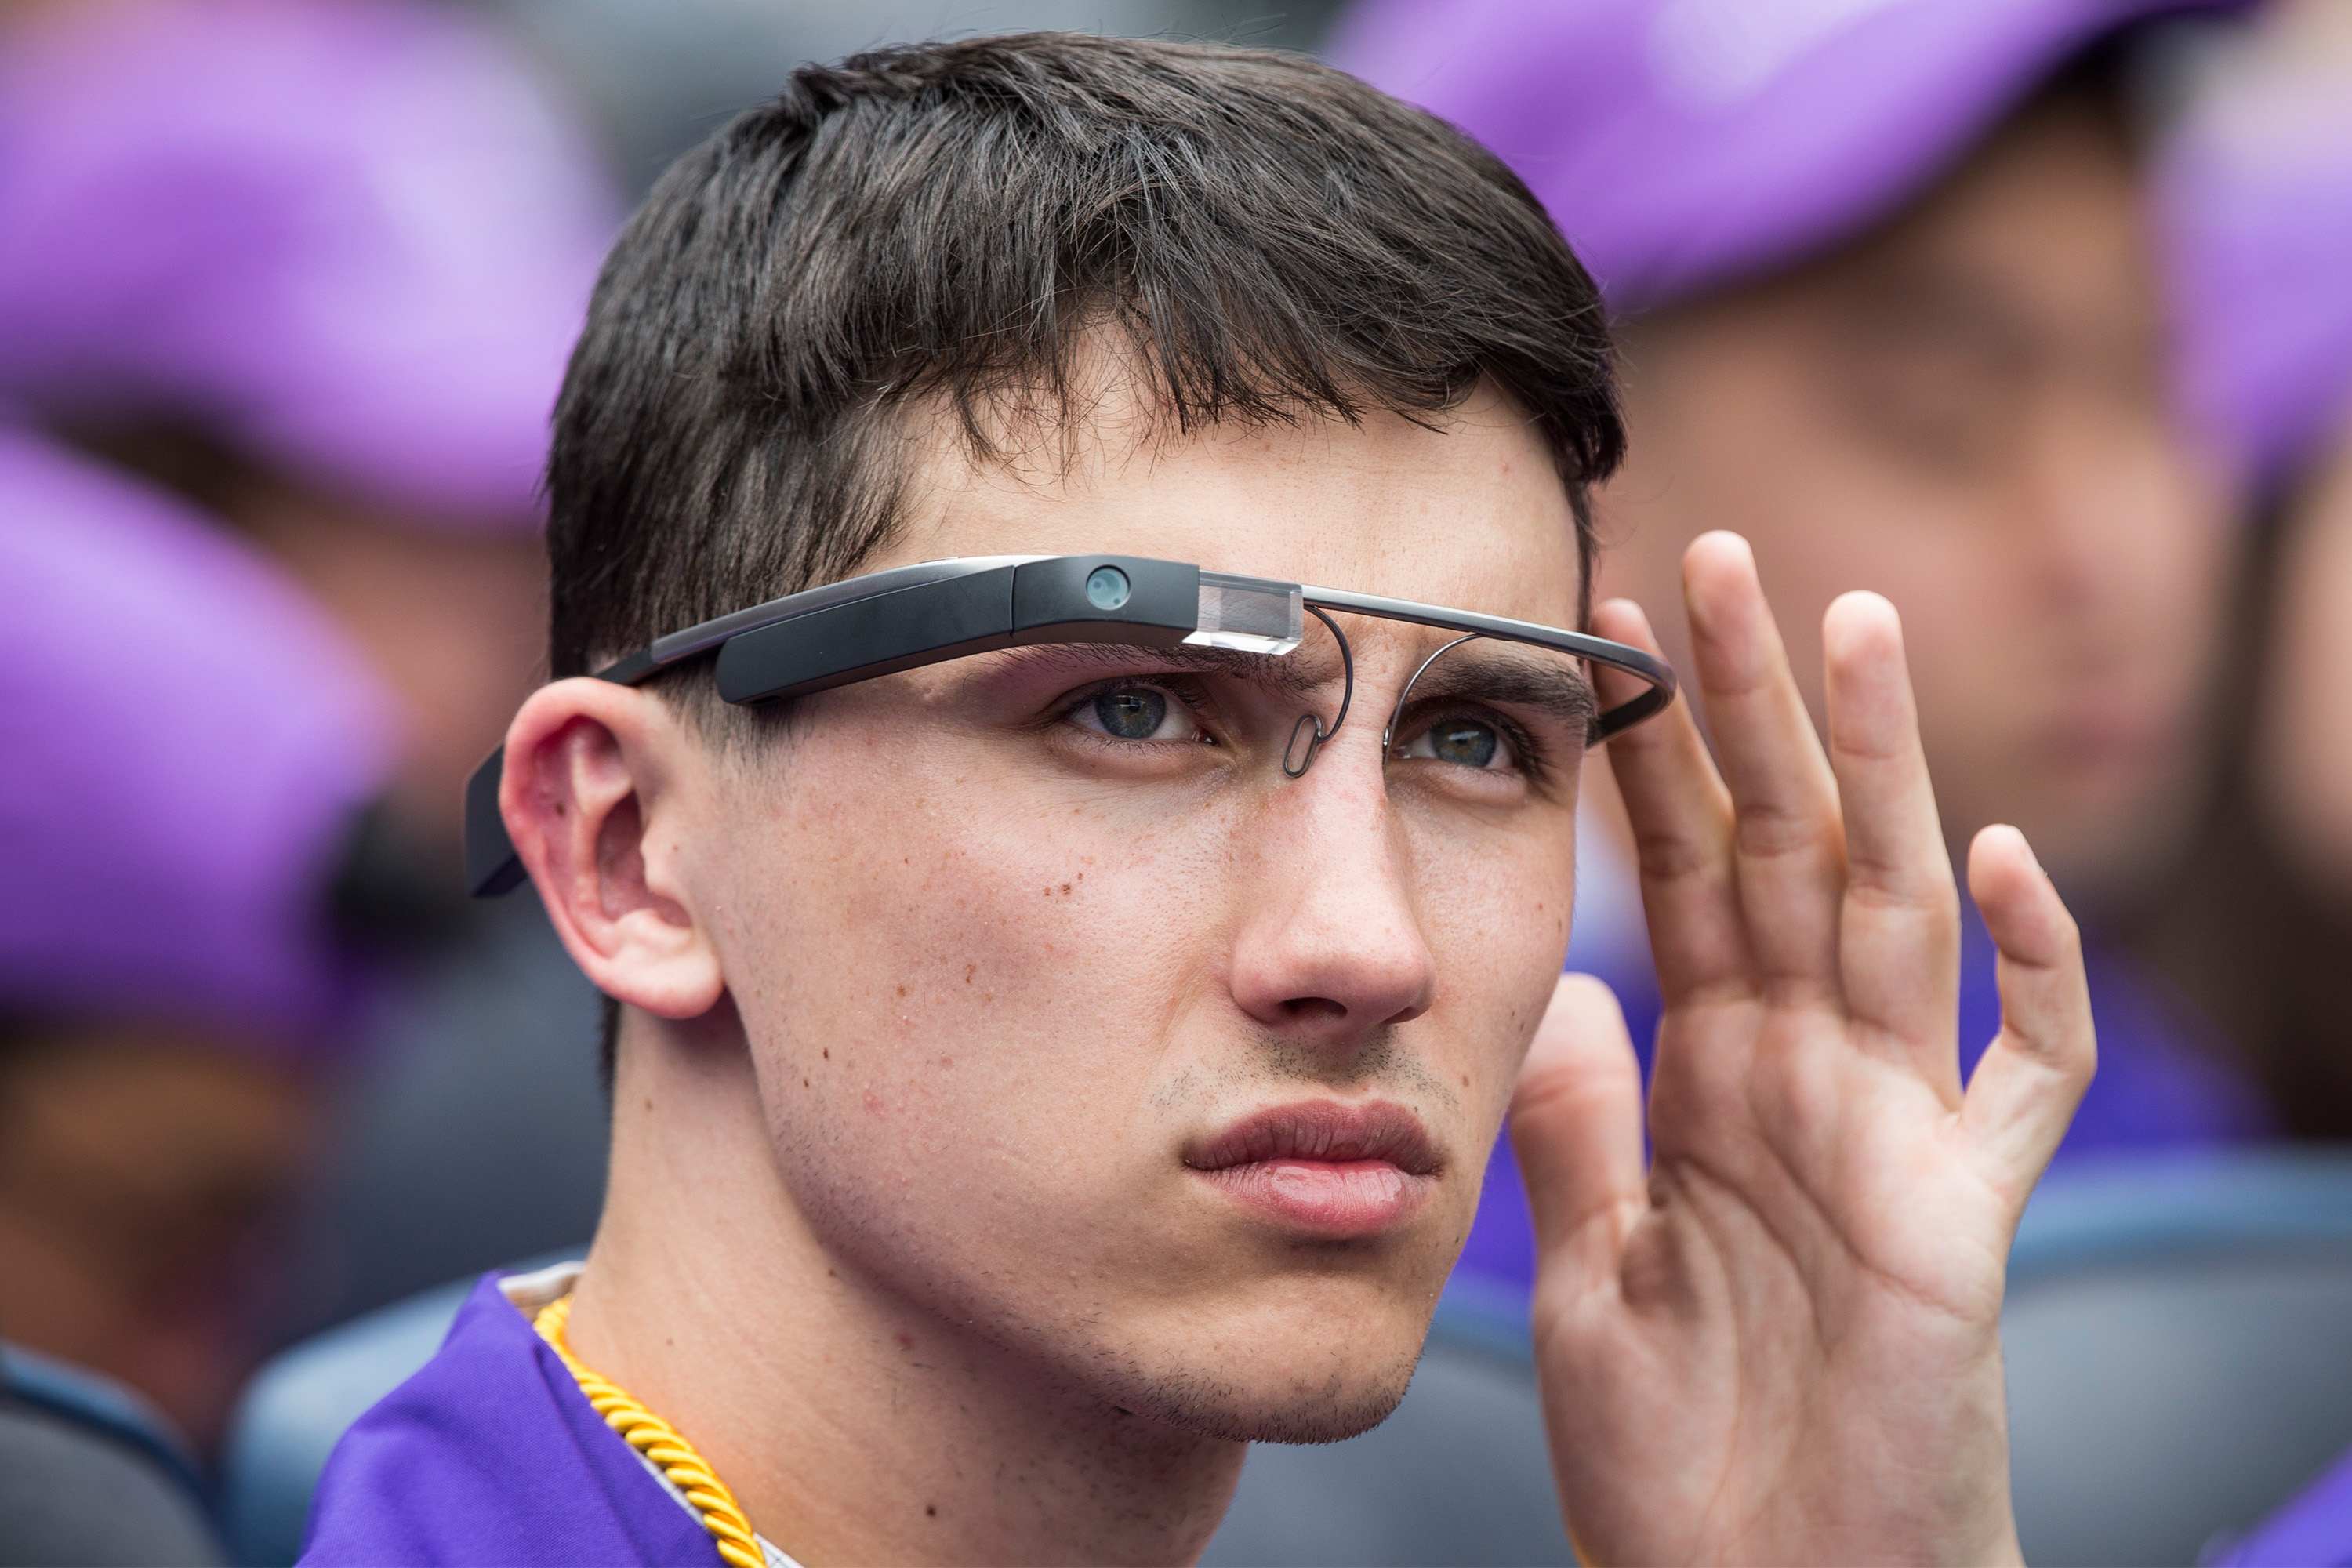 A student wears Google Glass at the 2014 New York University graduation ceremony at Yankee Stadium on May 21, 2014 in the Bronx borough of New York City.